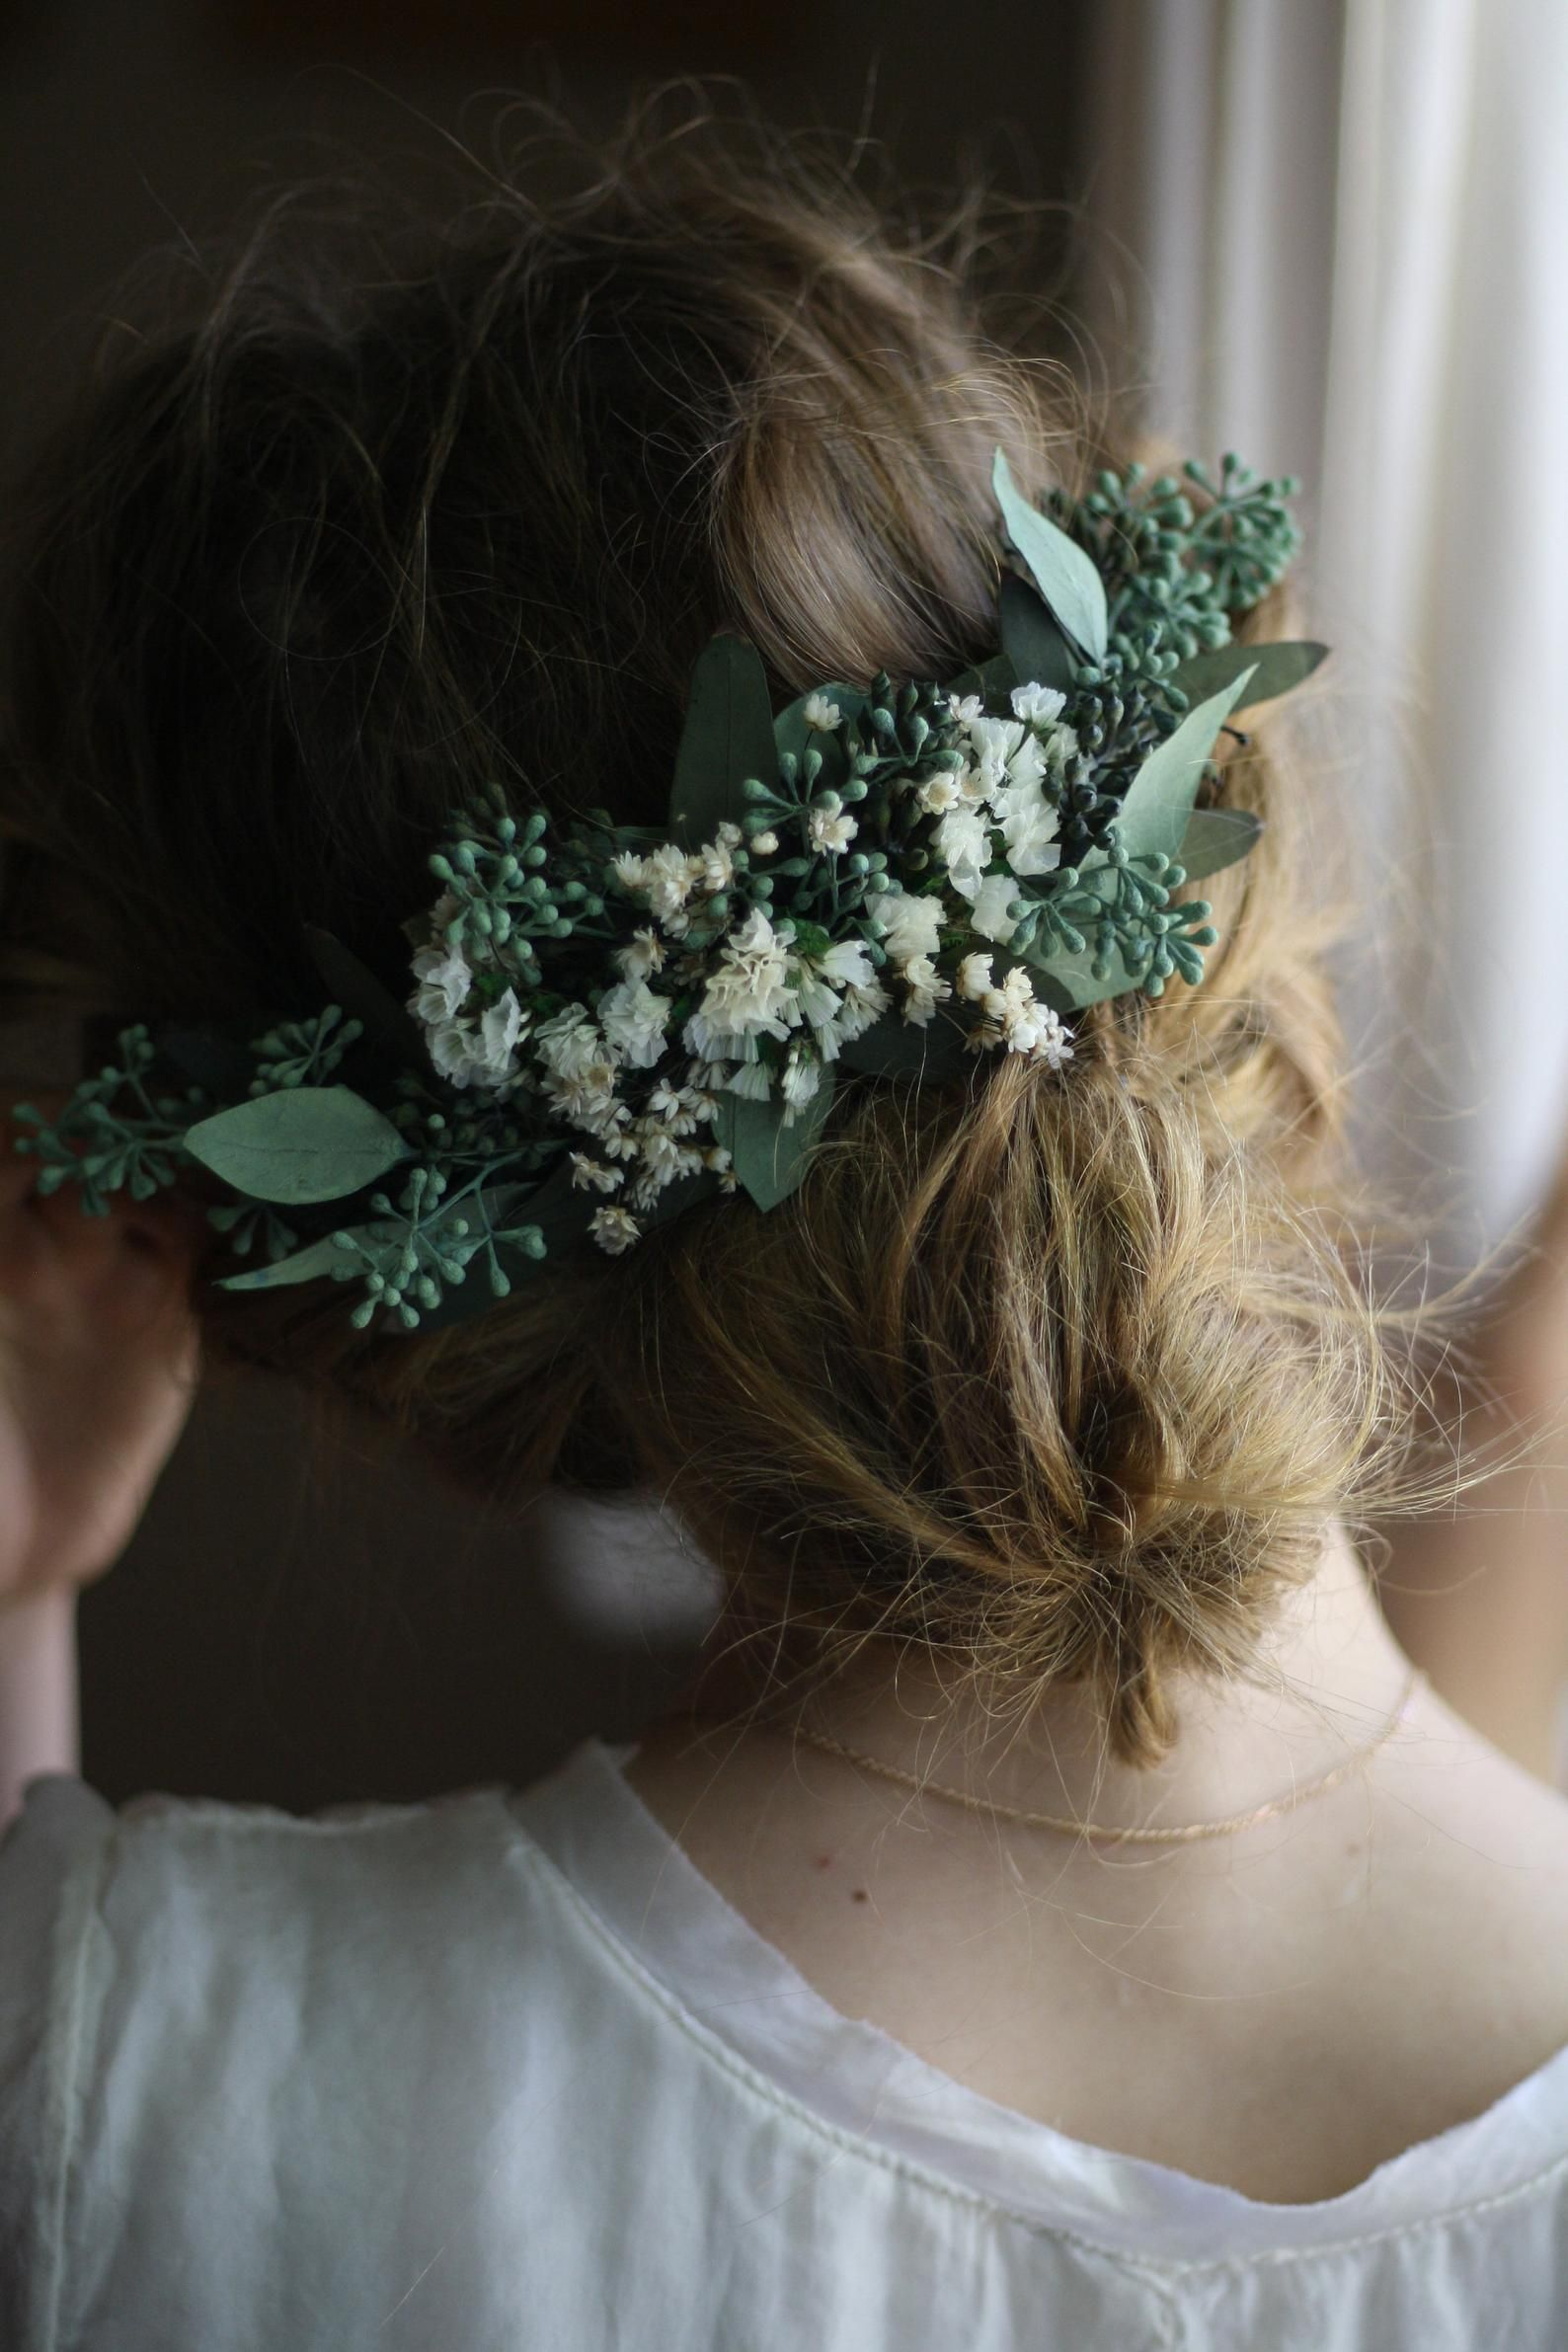 Pastel flower hair comb rustic floral headpiece beige bridal comb country wedding hairpiece natural eucalyptus hair clip winter headpiece